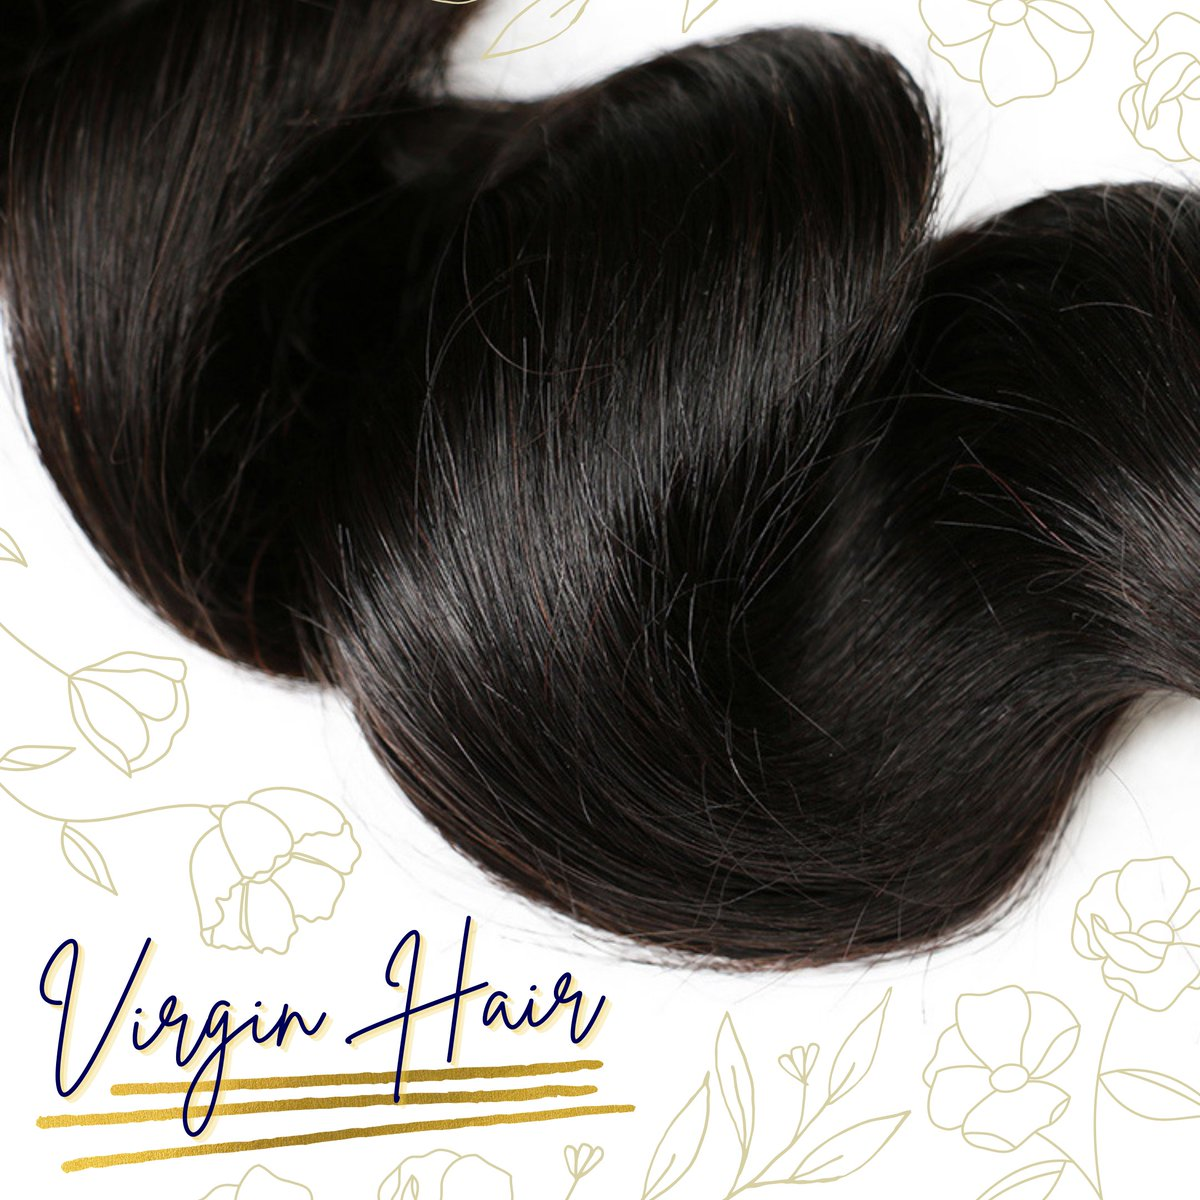 [PRODUCT FEATURES]  We sell high-quality #VirginHair with healthy, intact cuticles that are gathered by a sturdy, machine-weft bundle! Then pair the bundles with a closure made with high-quality lace to give you a natural hairline and seamless transition. 💁🏾♀️✨ #beauty #hair